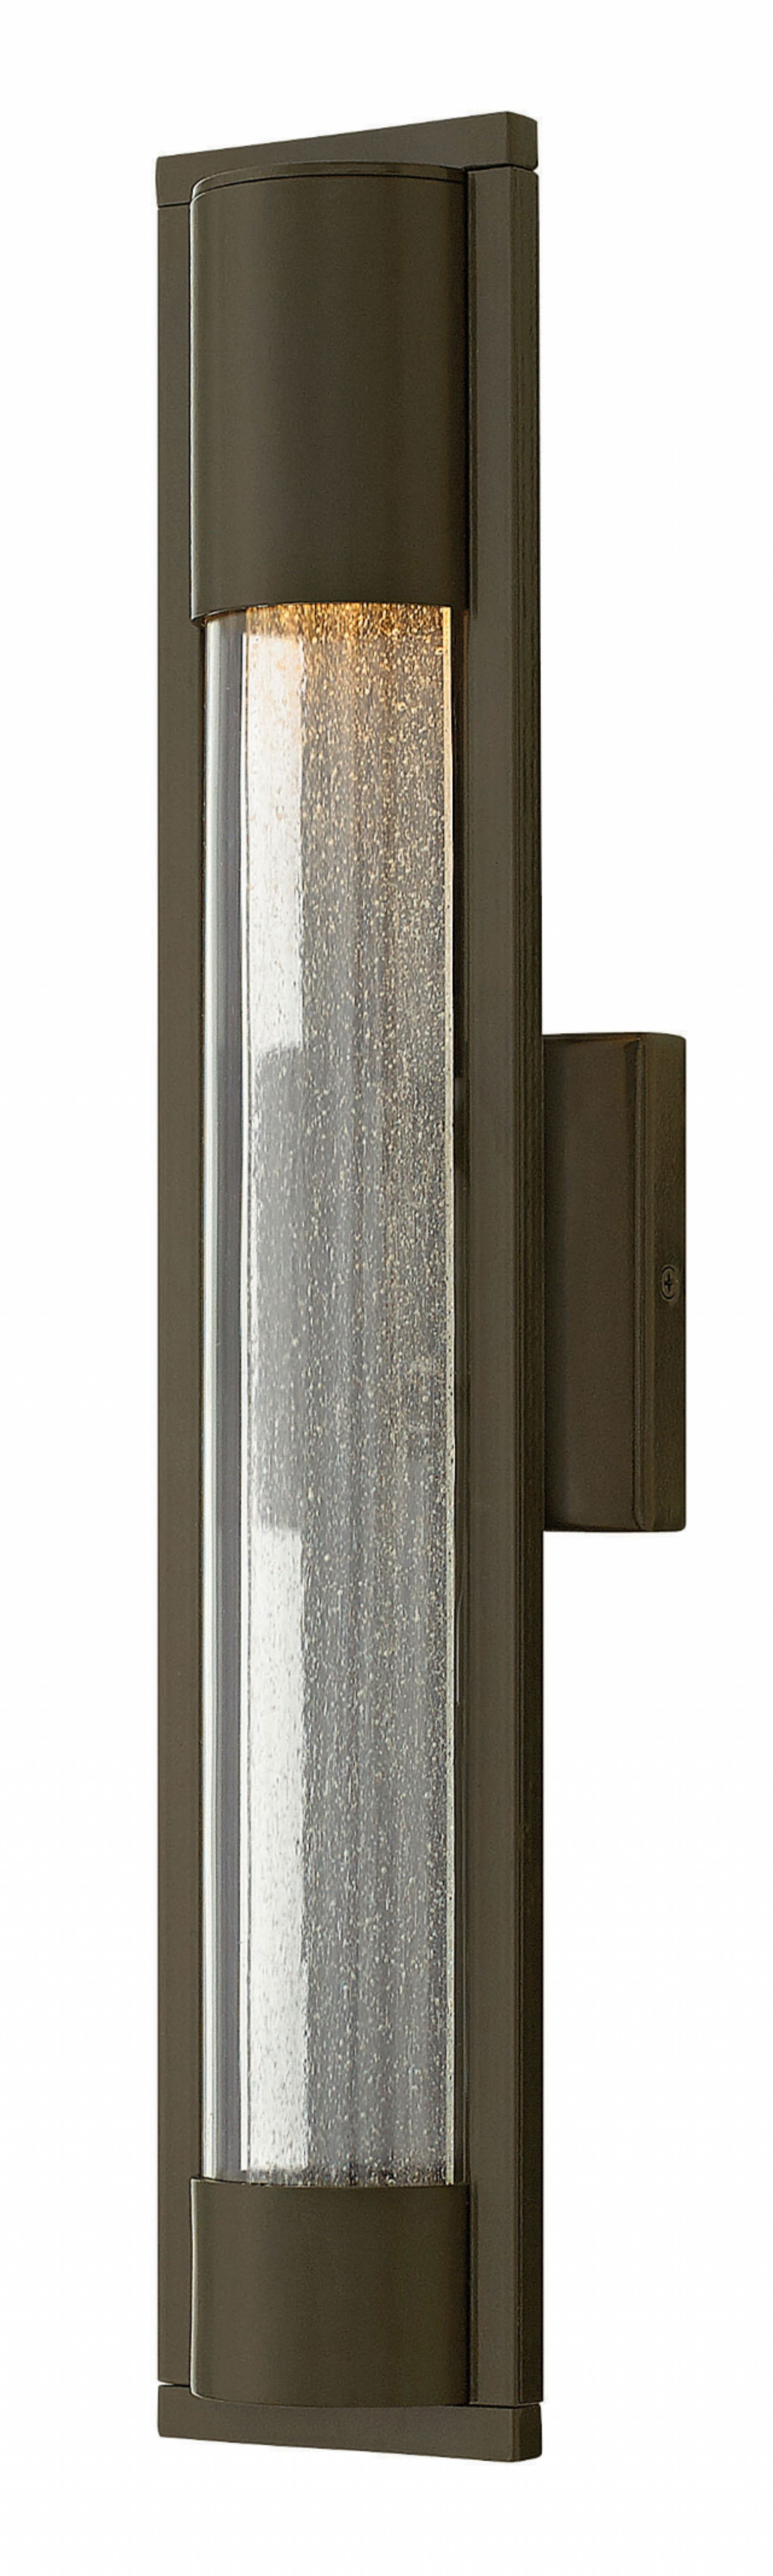 Hinkley Lighting – Mist 1224Bz | Wetzel | Pinterest | Hinkley With Double Wall Mount Hinkley Lighting (#6 of 15)